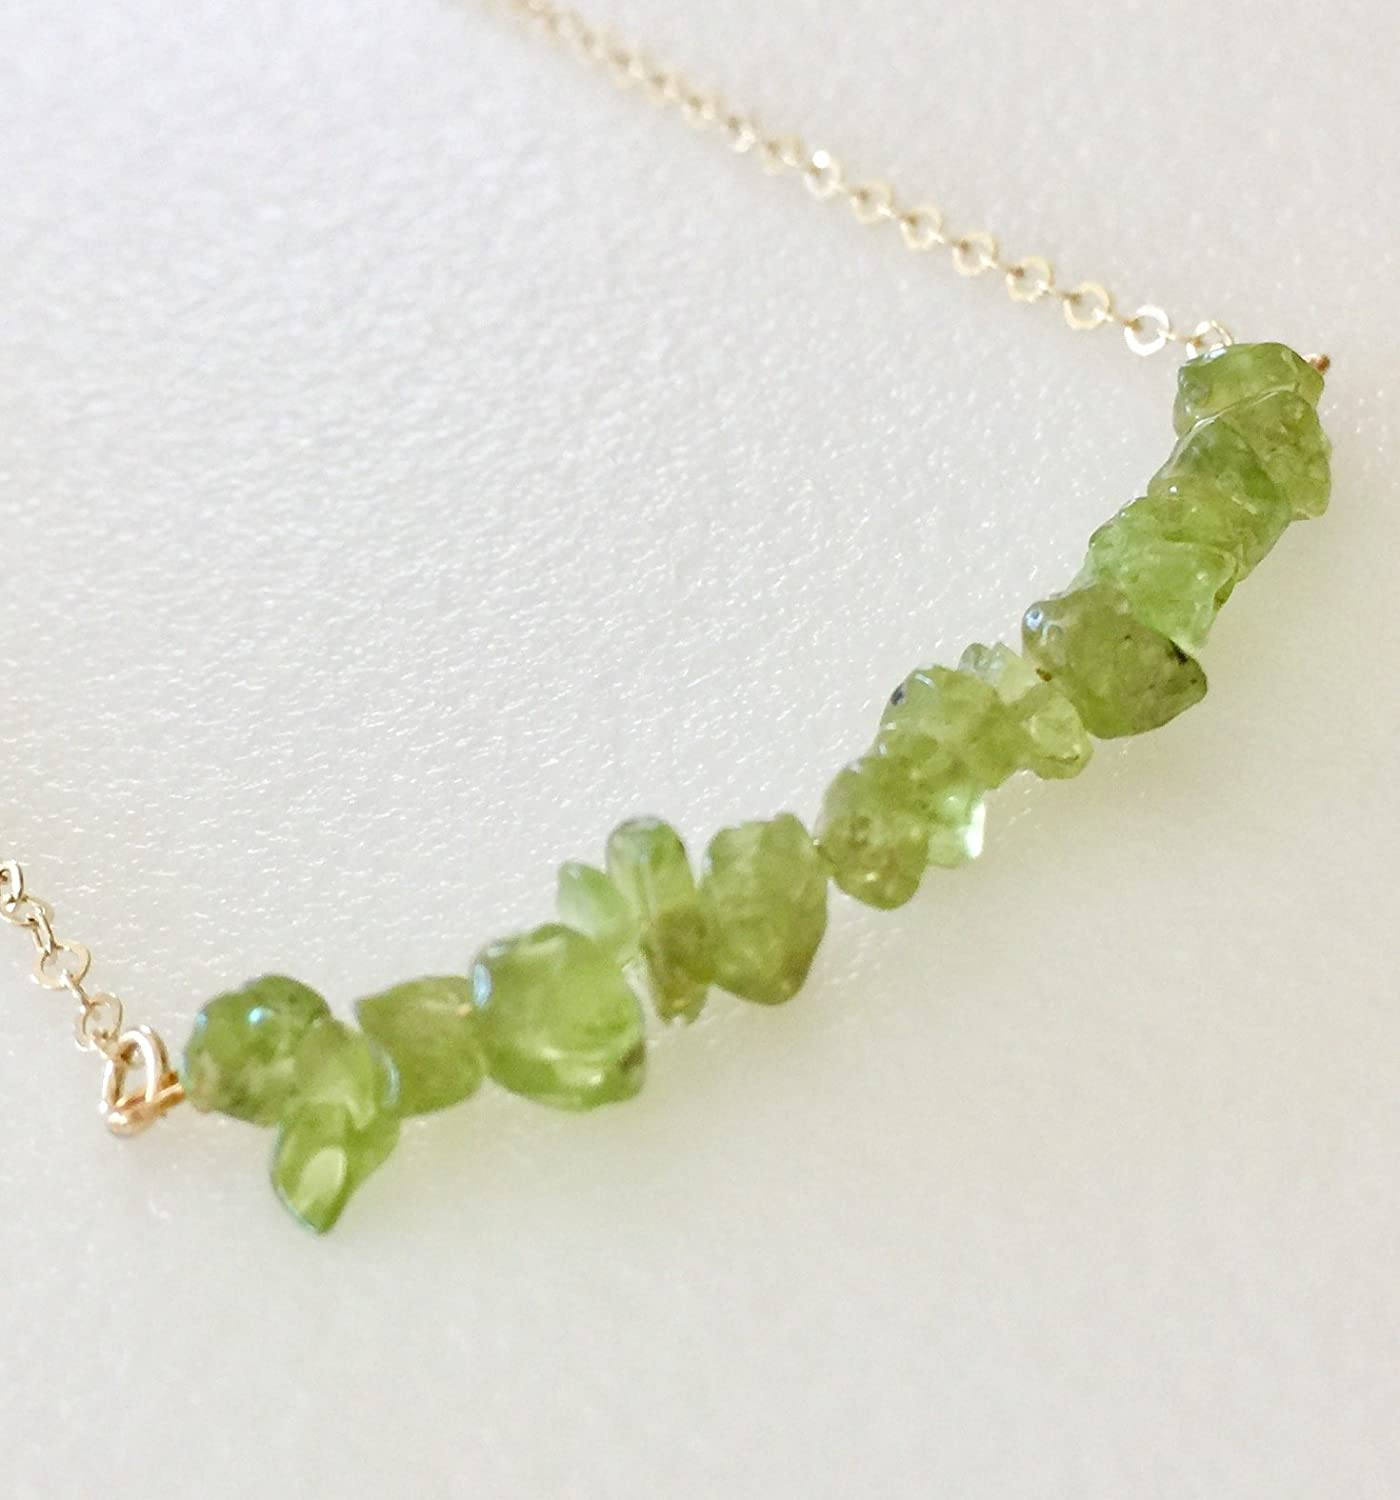 Boho Bar Necklace Dainty Bar Necklace Apple Green Stone Chip Necklace August Birthstone Peridot Bar Necklace Trendy Healing Crystal Gift